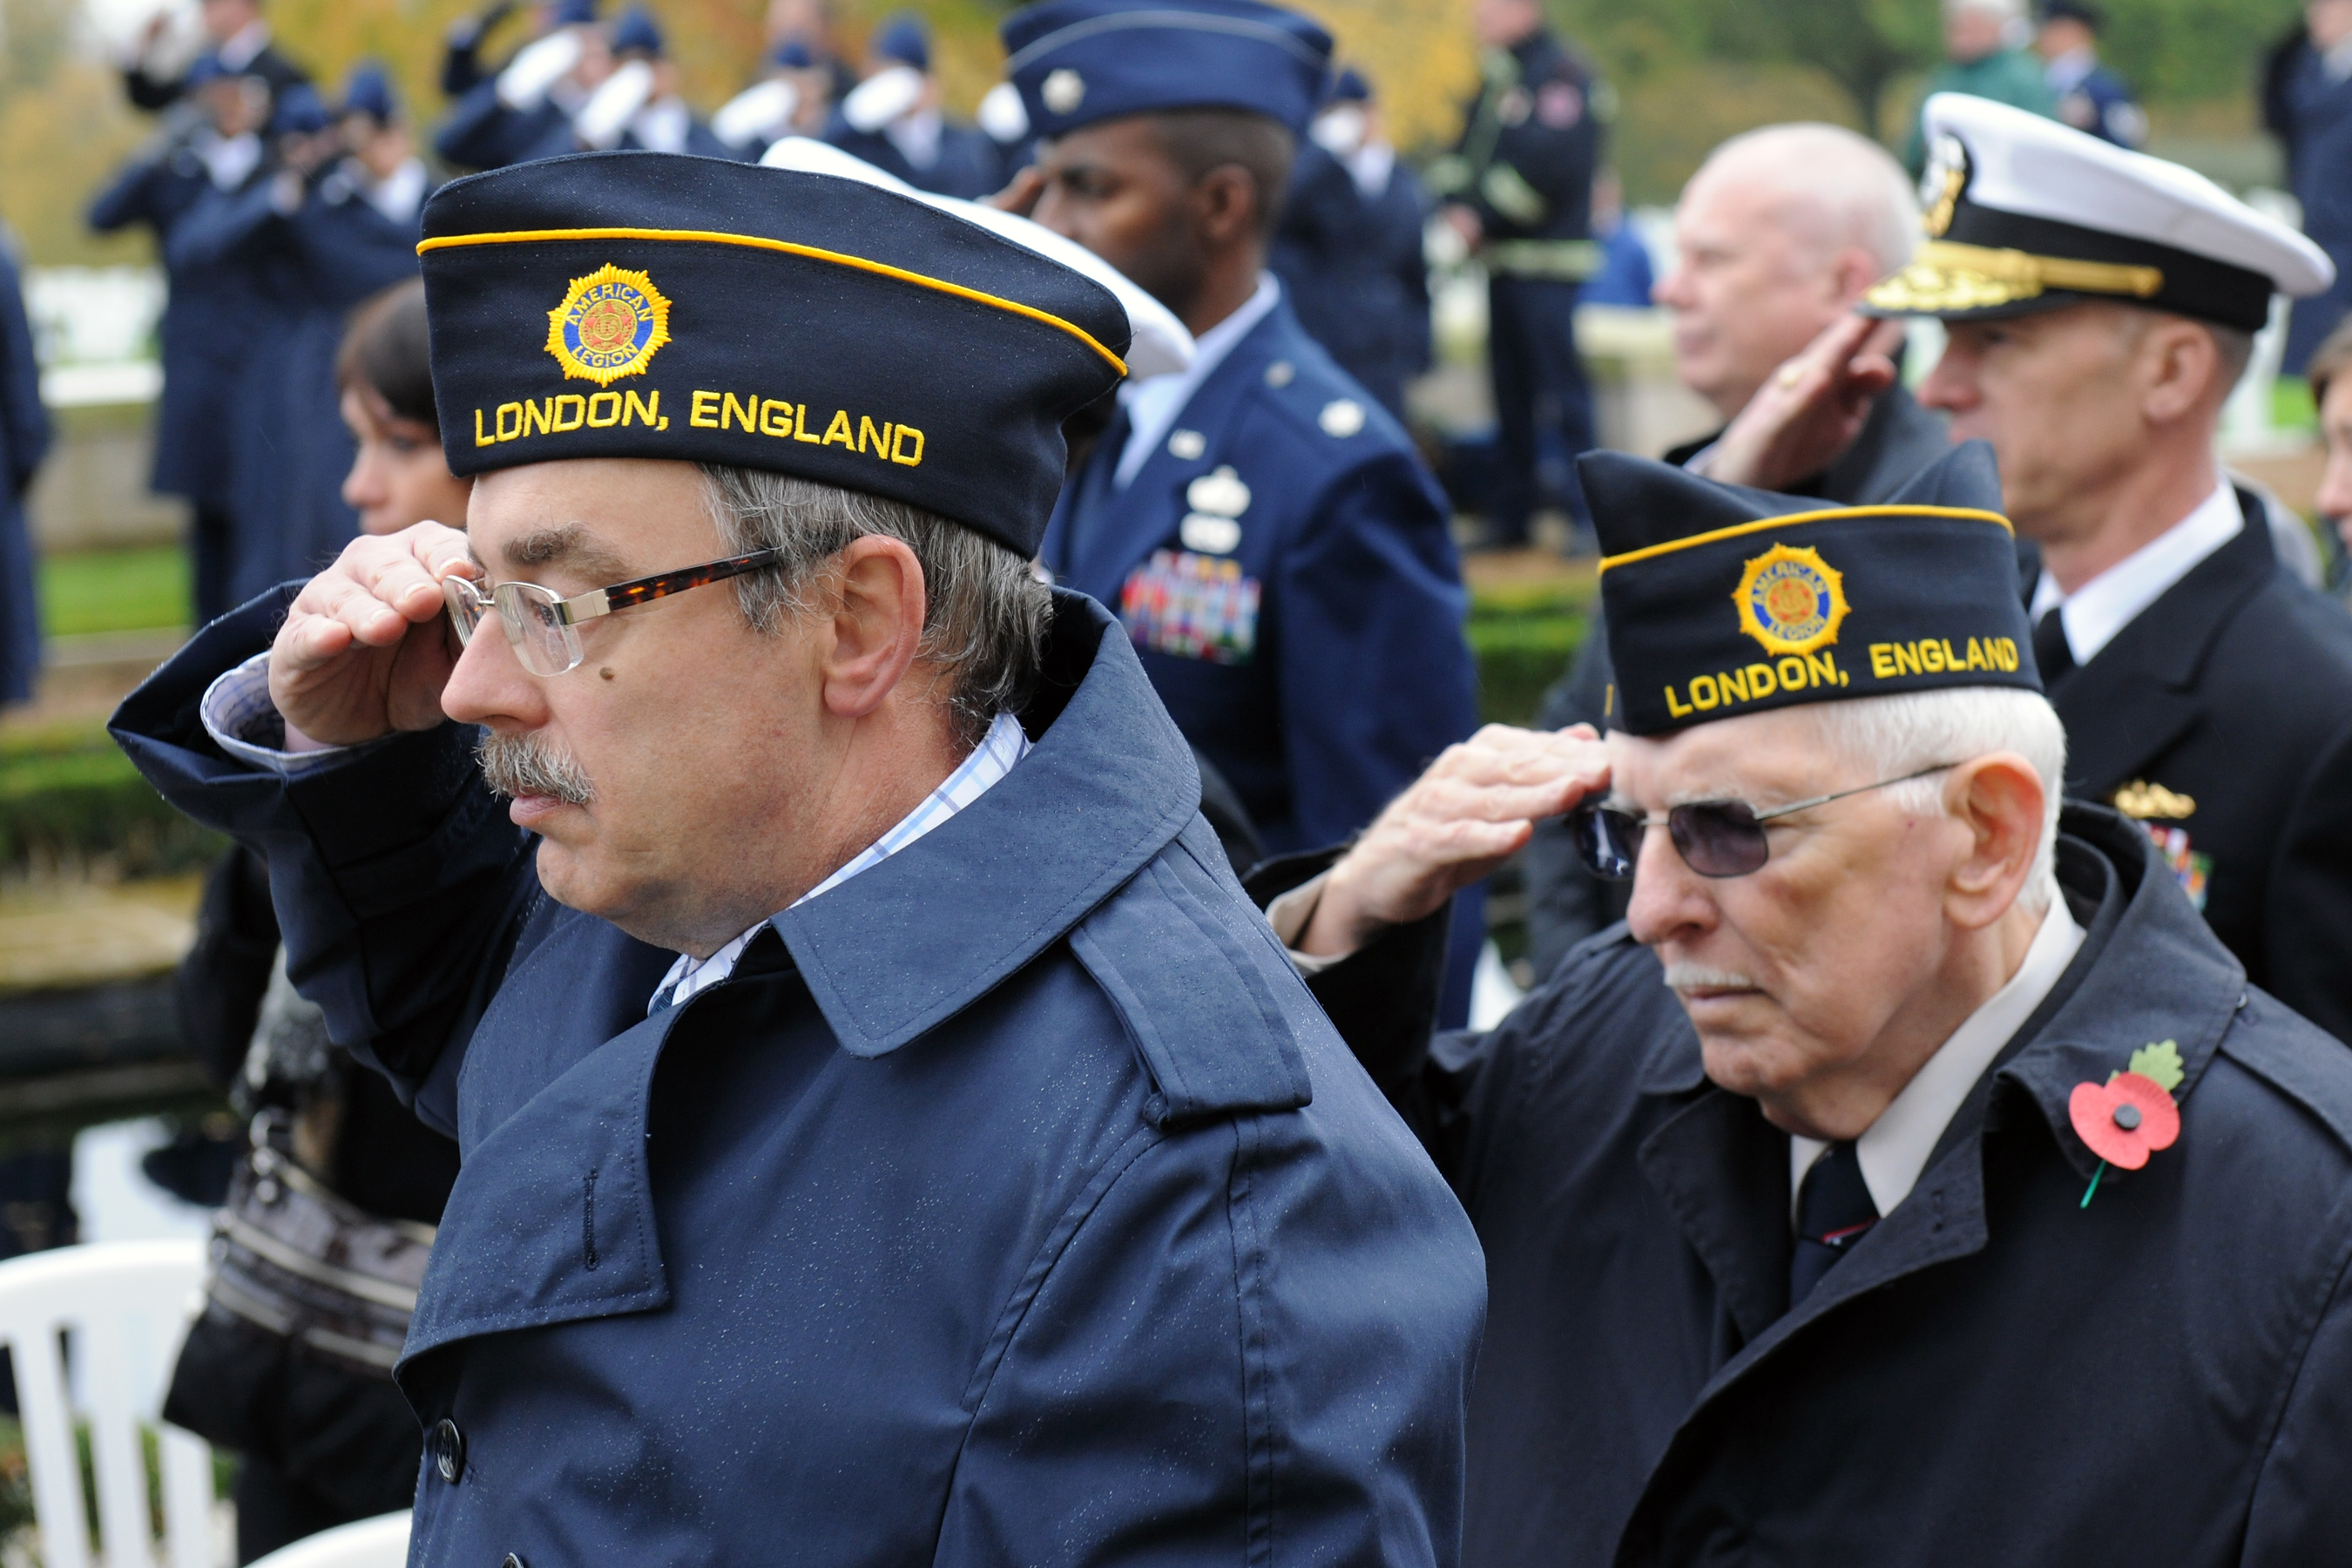 Do you salute during taps